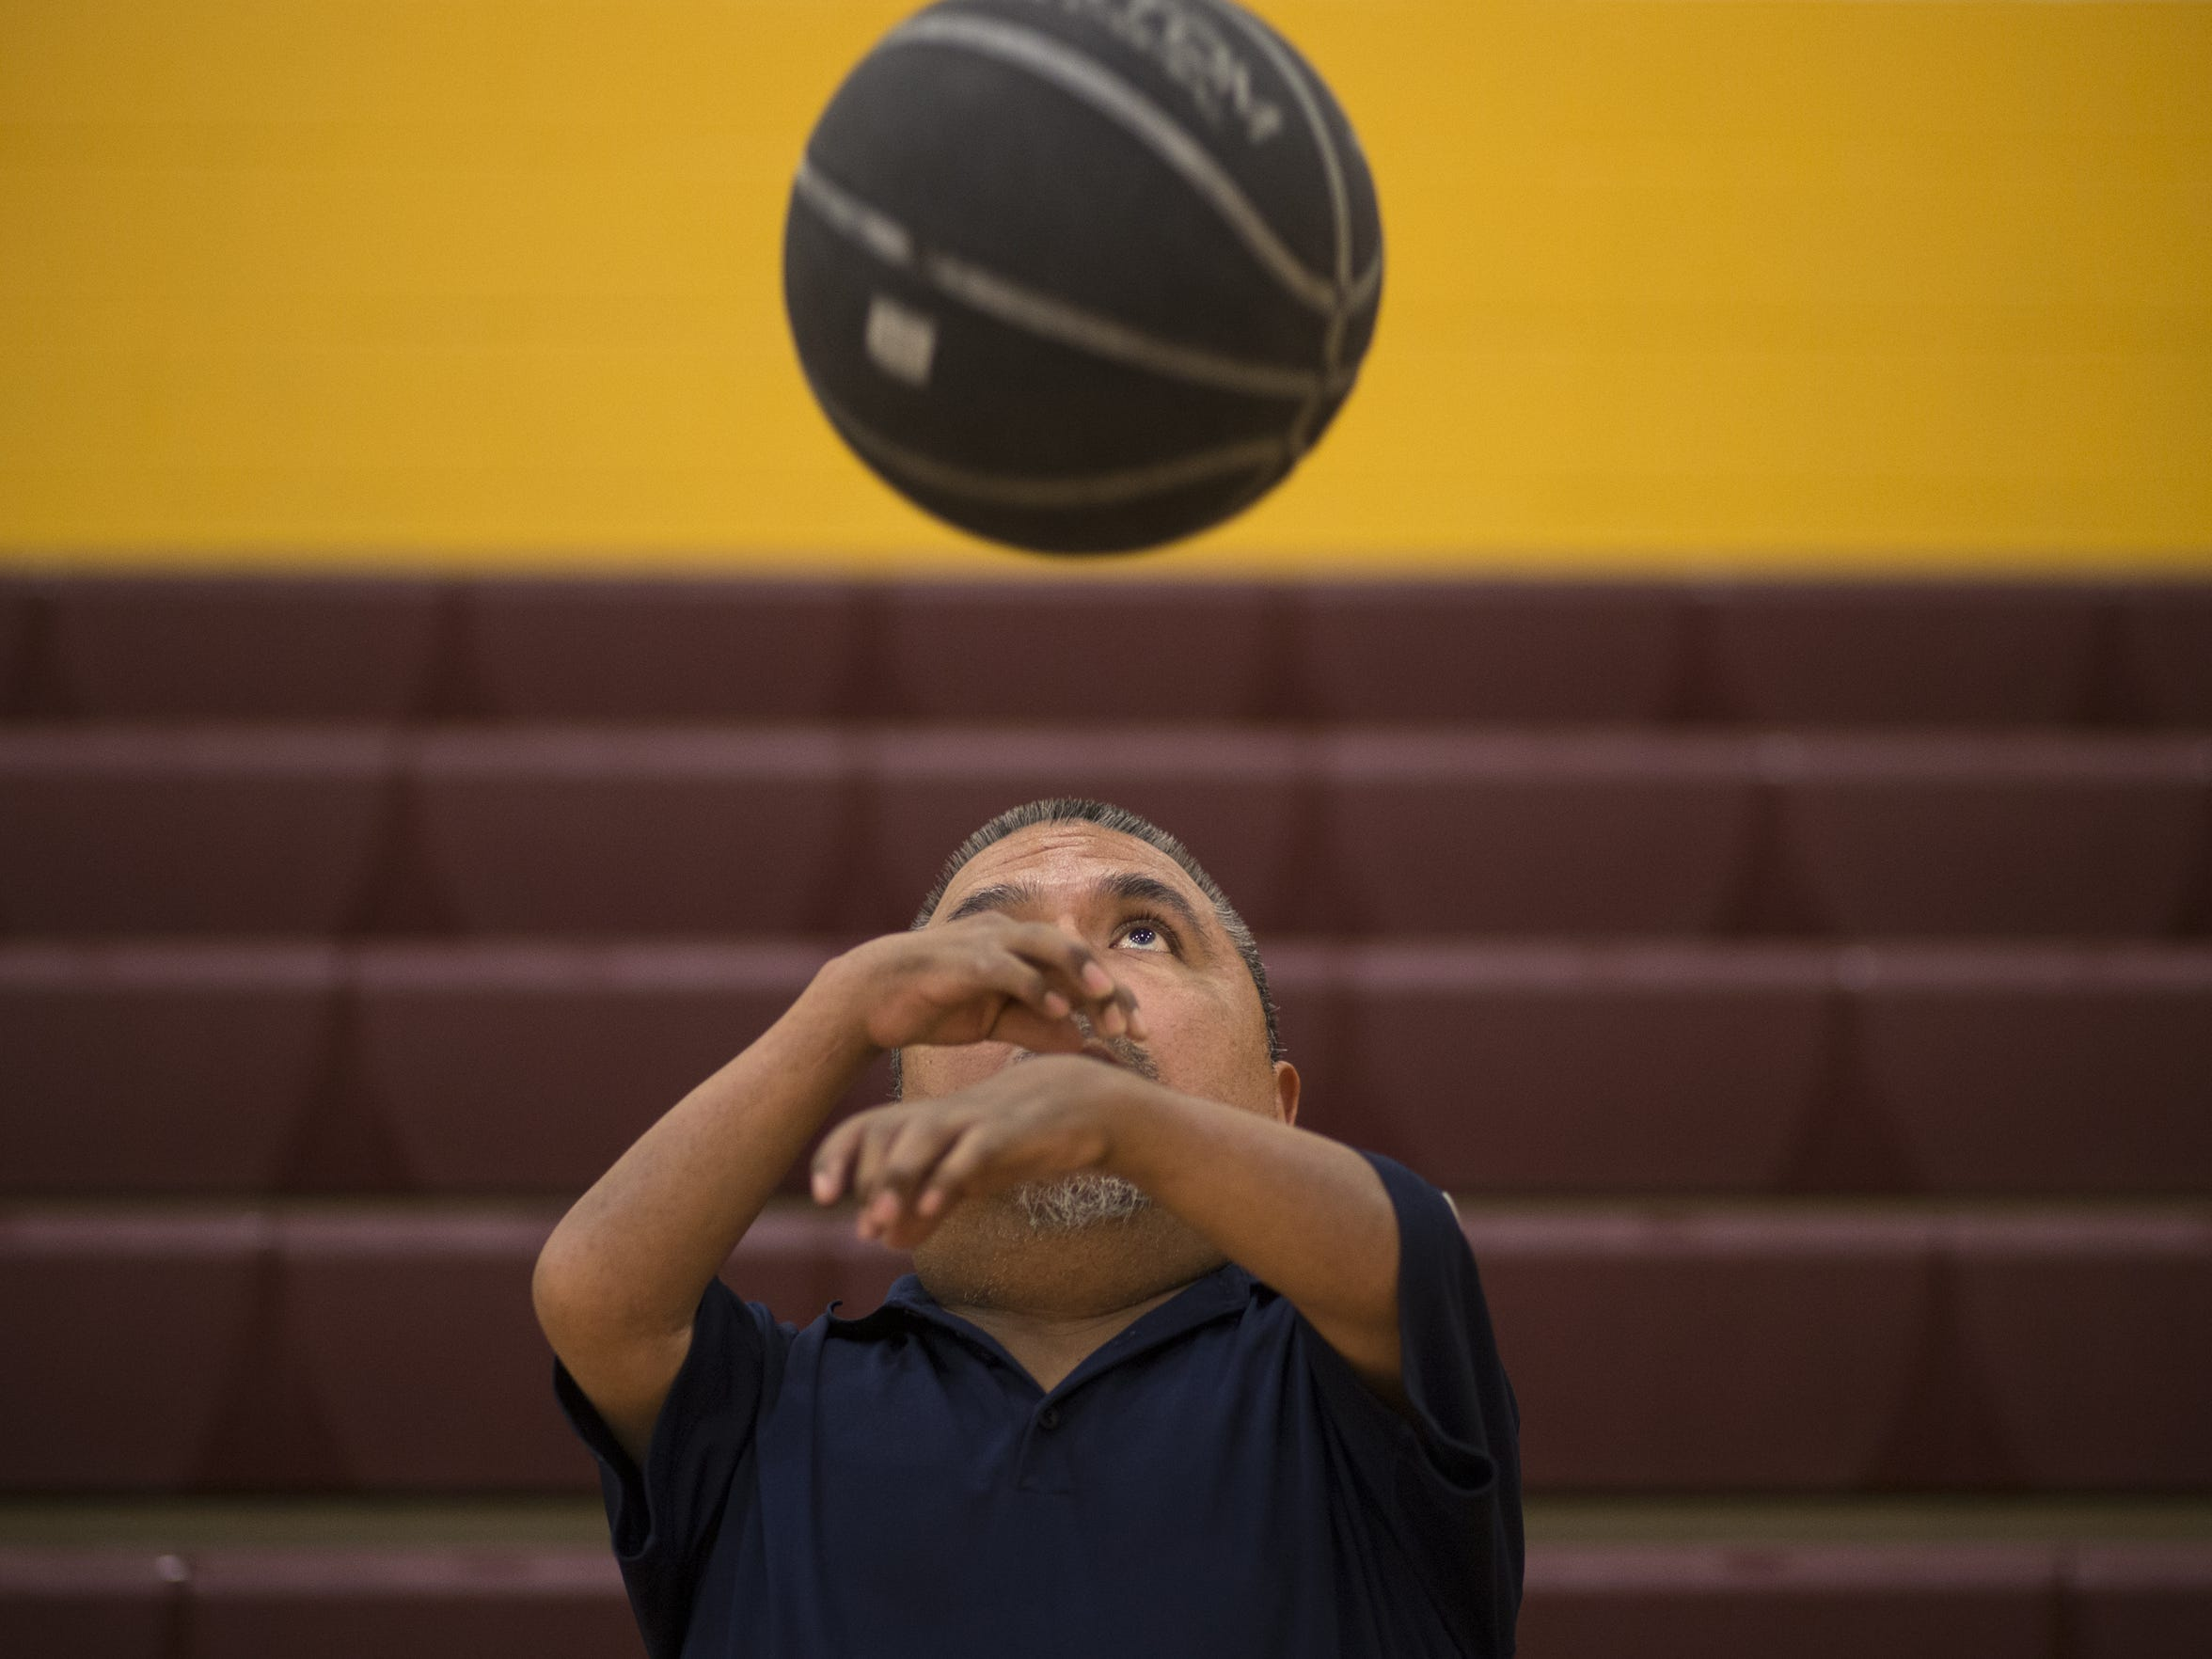 David Solano catches a basketball before the start